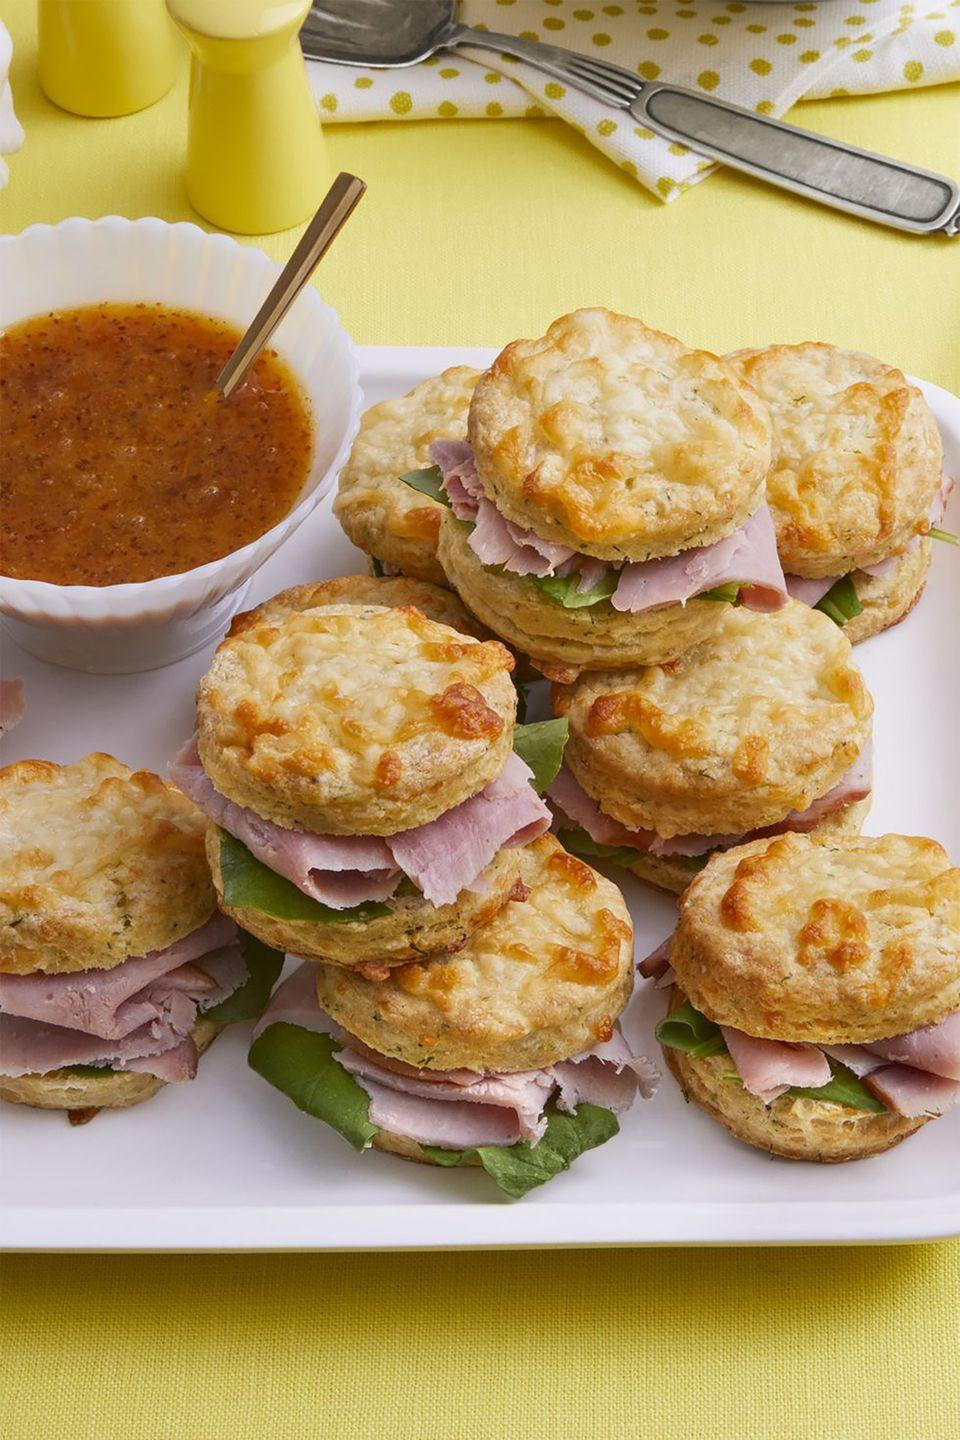 """<p>These ham and biscuit sandwiches are the perfect, mess-free dish that Mom can enjoy in bed. </p><p><strong><a href=""""https://www.womansday.com/food-recipes/food-drinks/a19094239/ham-biscuits-recipe/"""" rel=""""nofollow noopener"""" target=""""_blank"""" data-ylk=""""slk:Get the Ham Biscuits recipe."""" class=""""link rapid-noclick-resp""""><em>Get the Ham Biscuits recipe.</em></a></strong></p>"""